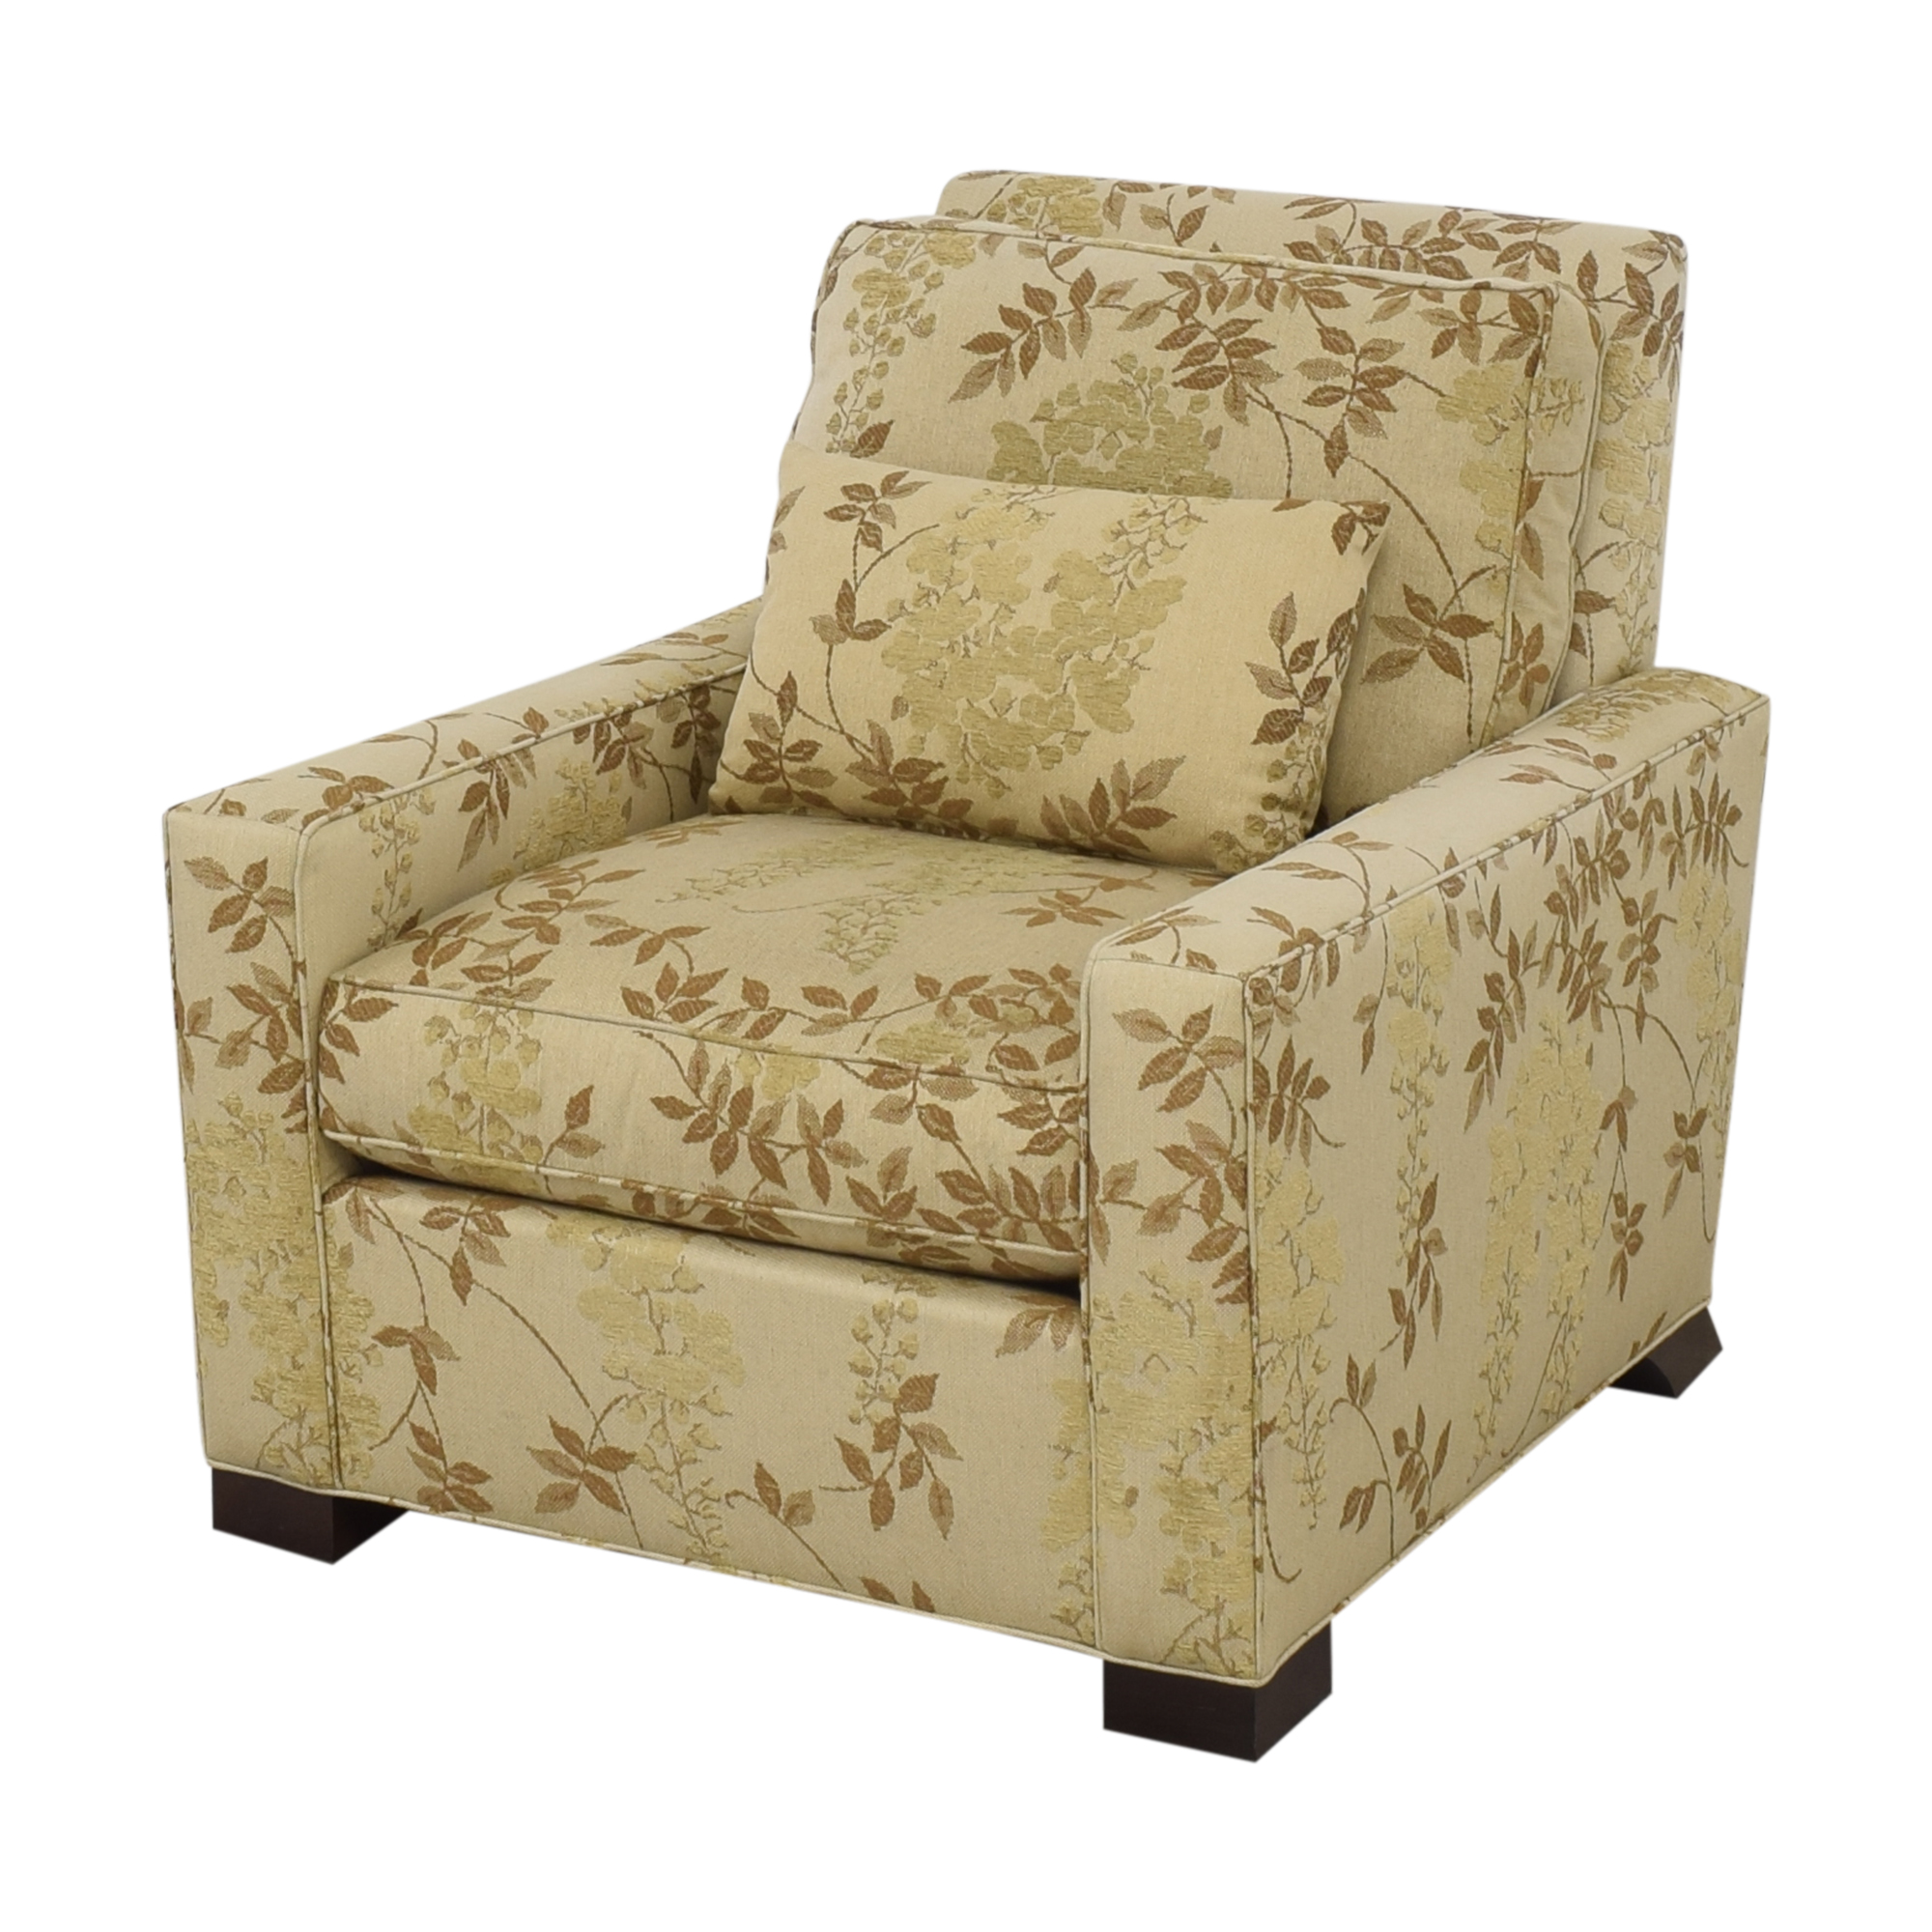 Hickory Chair Upholstered Club Chair sale